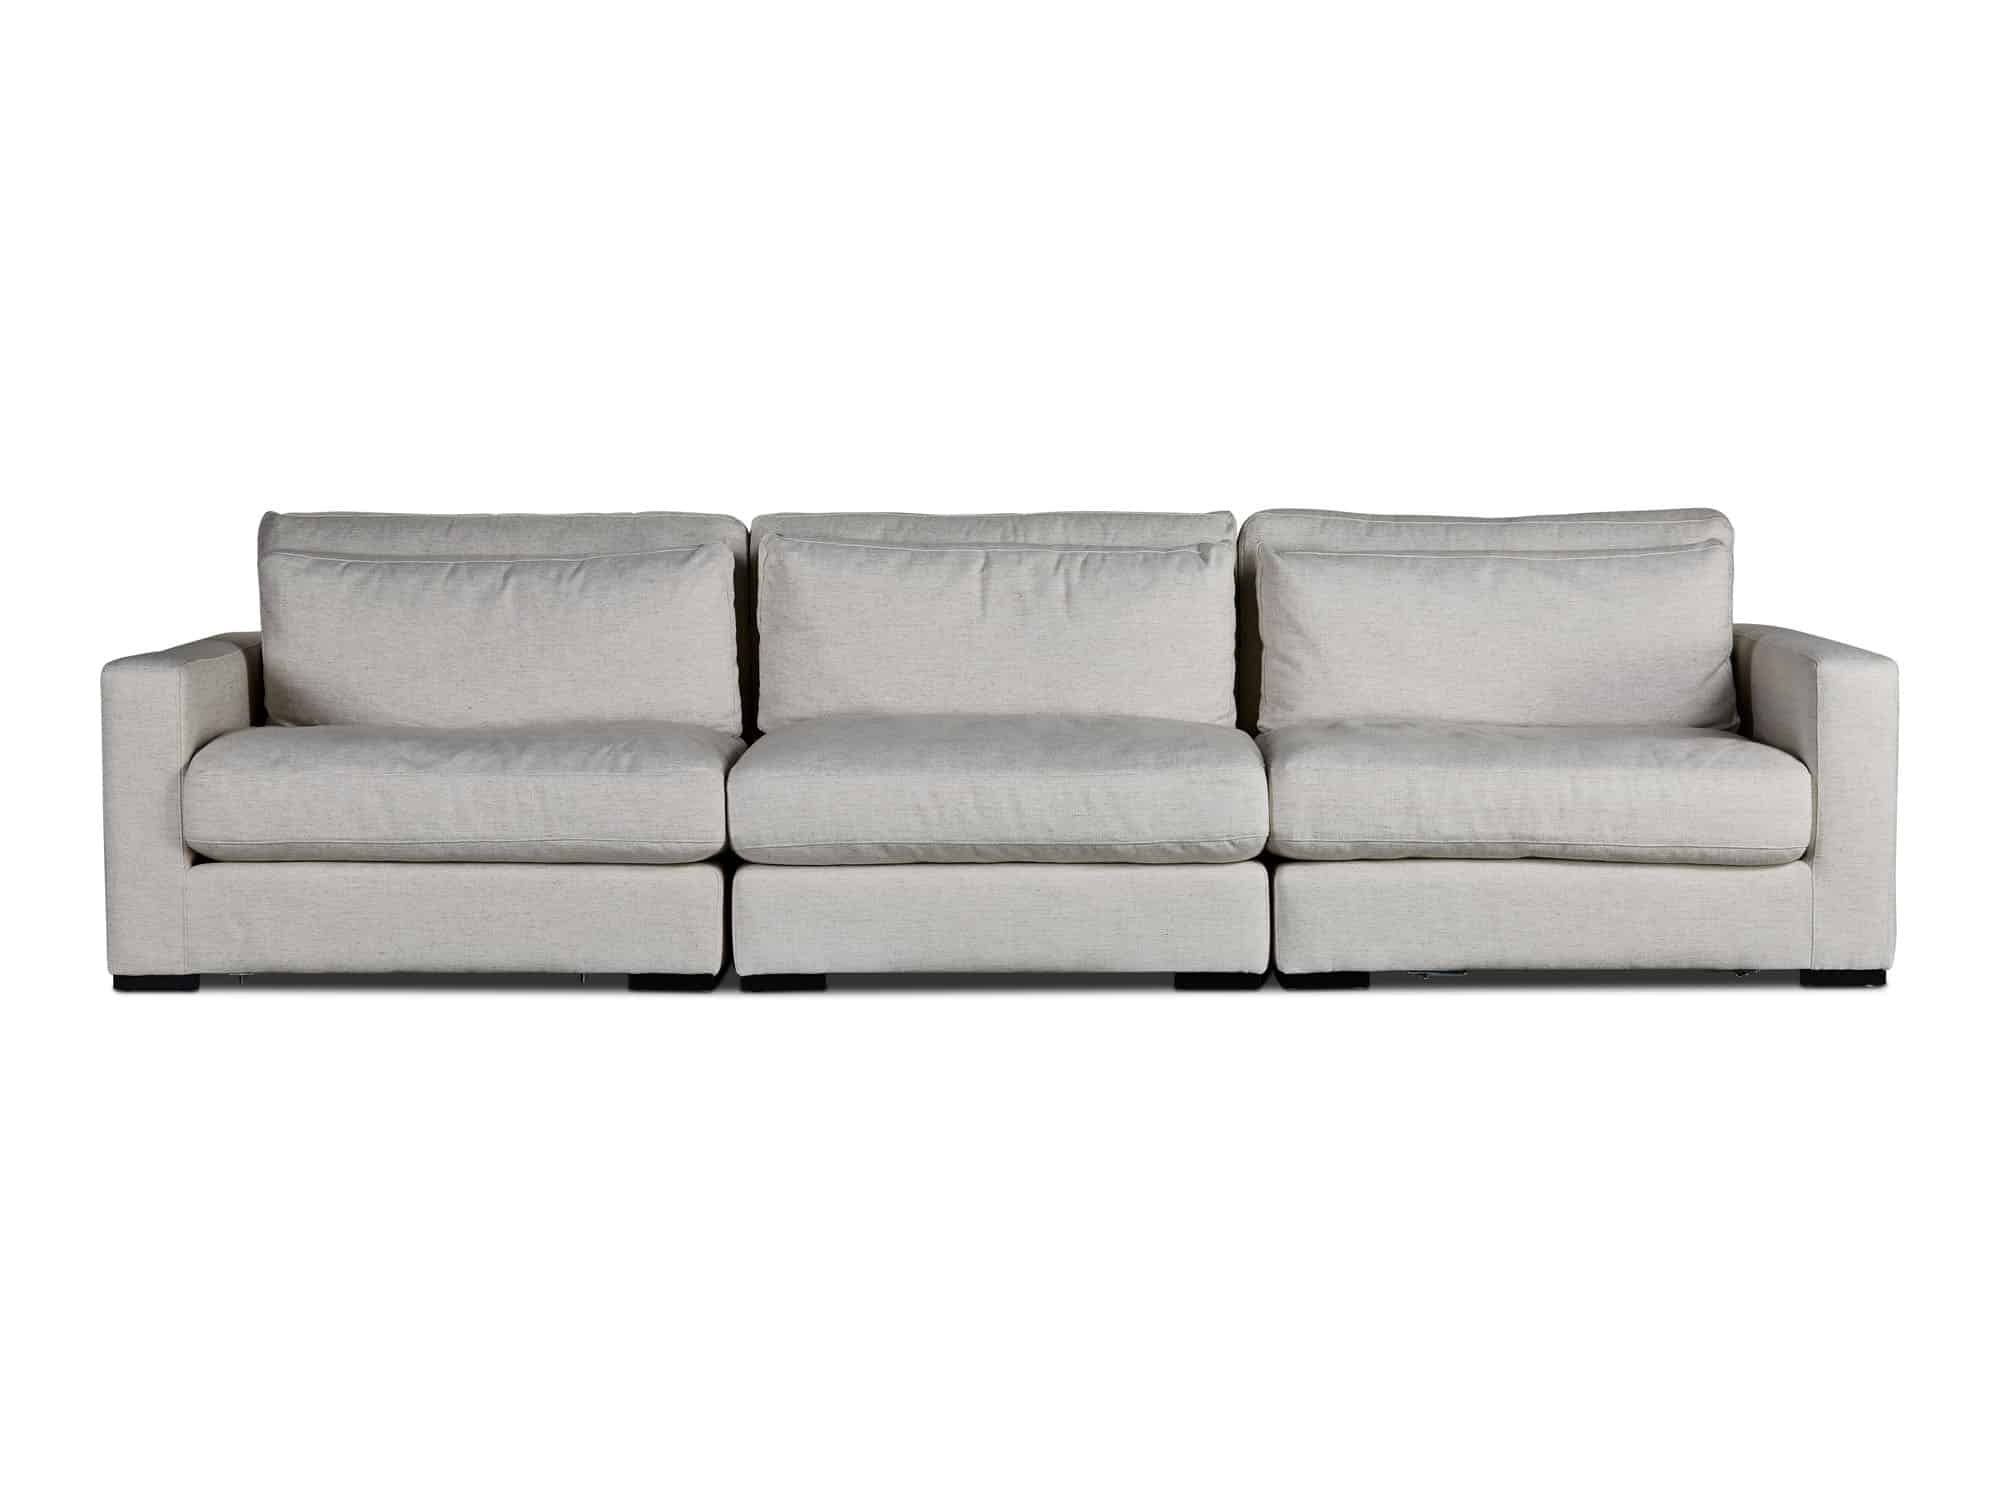 Hyde Park 3 seater sofa